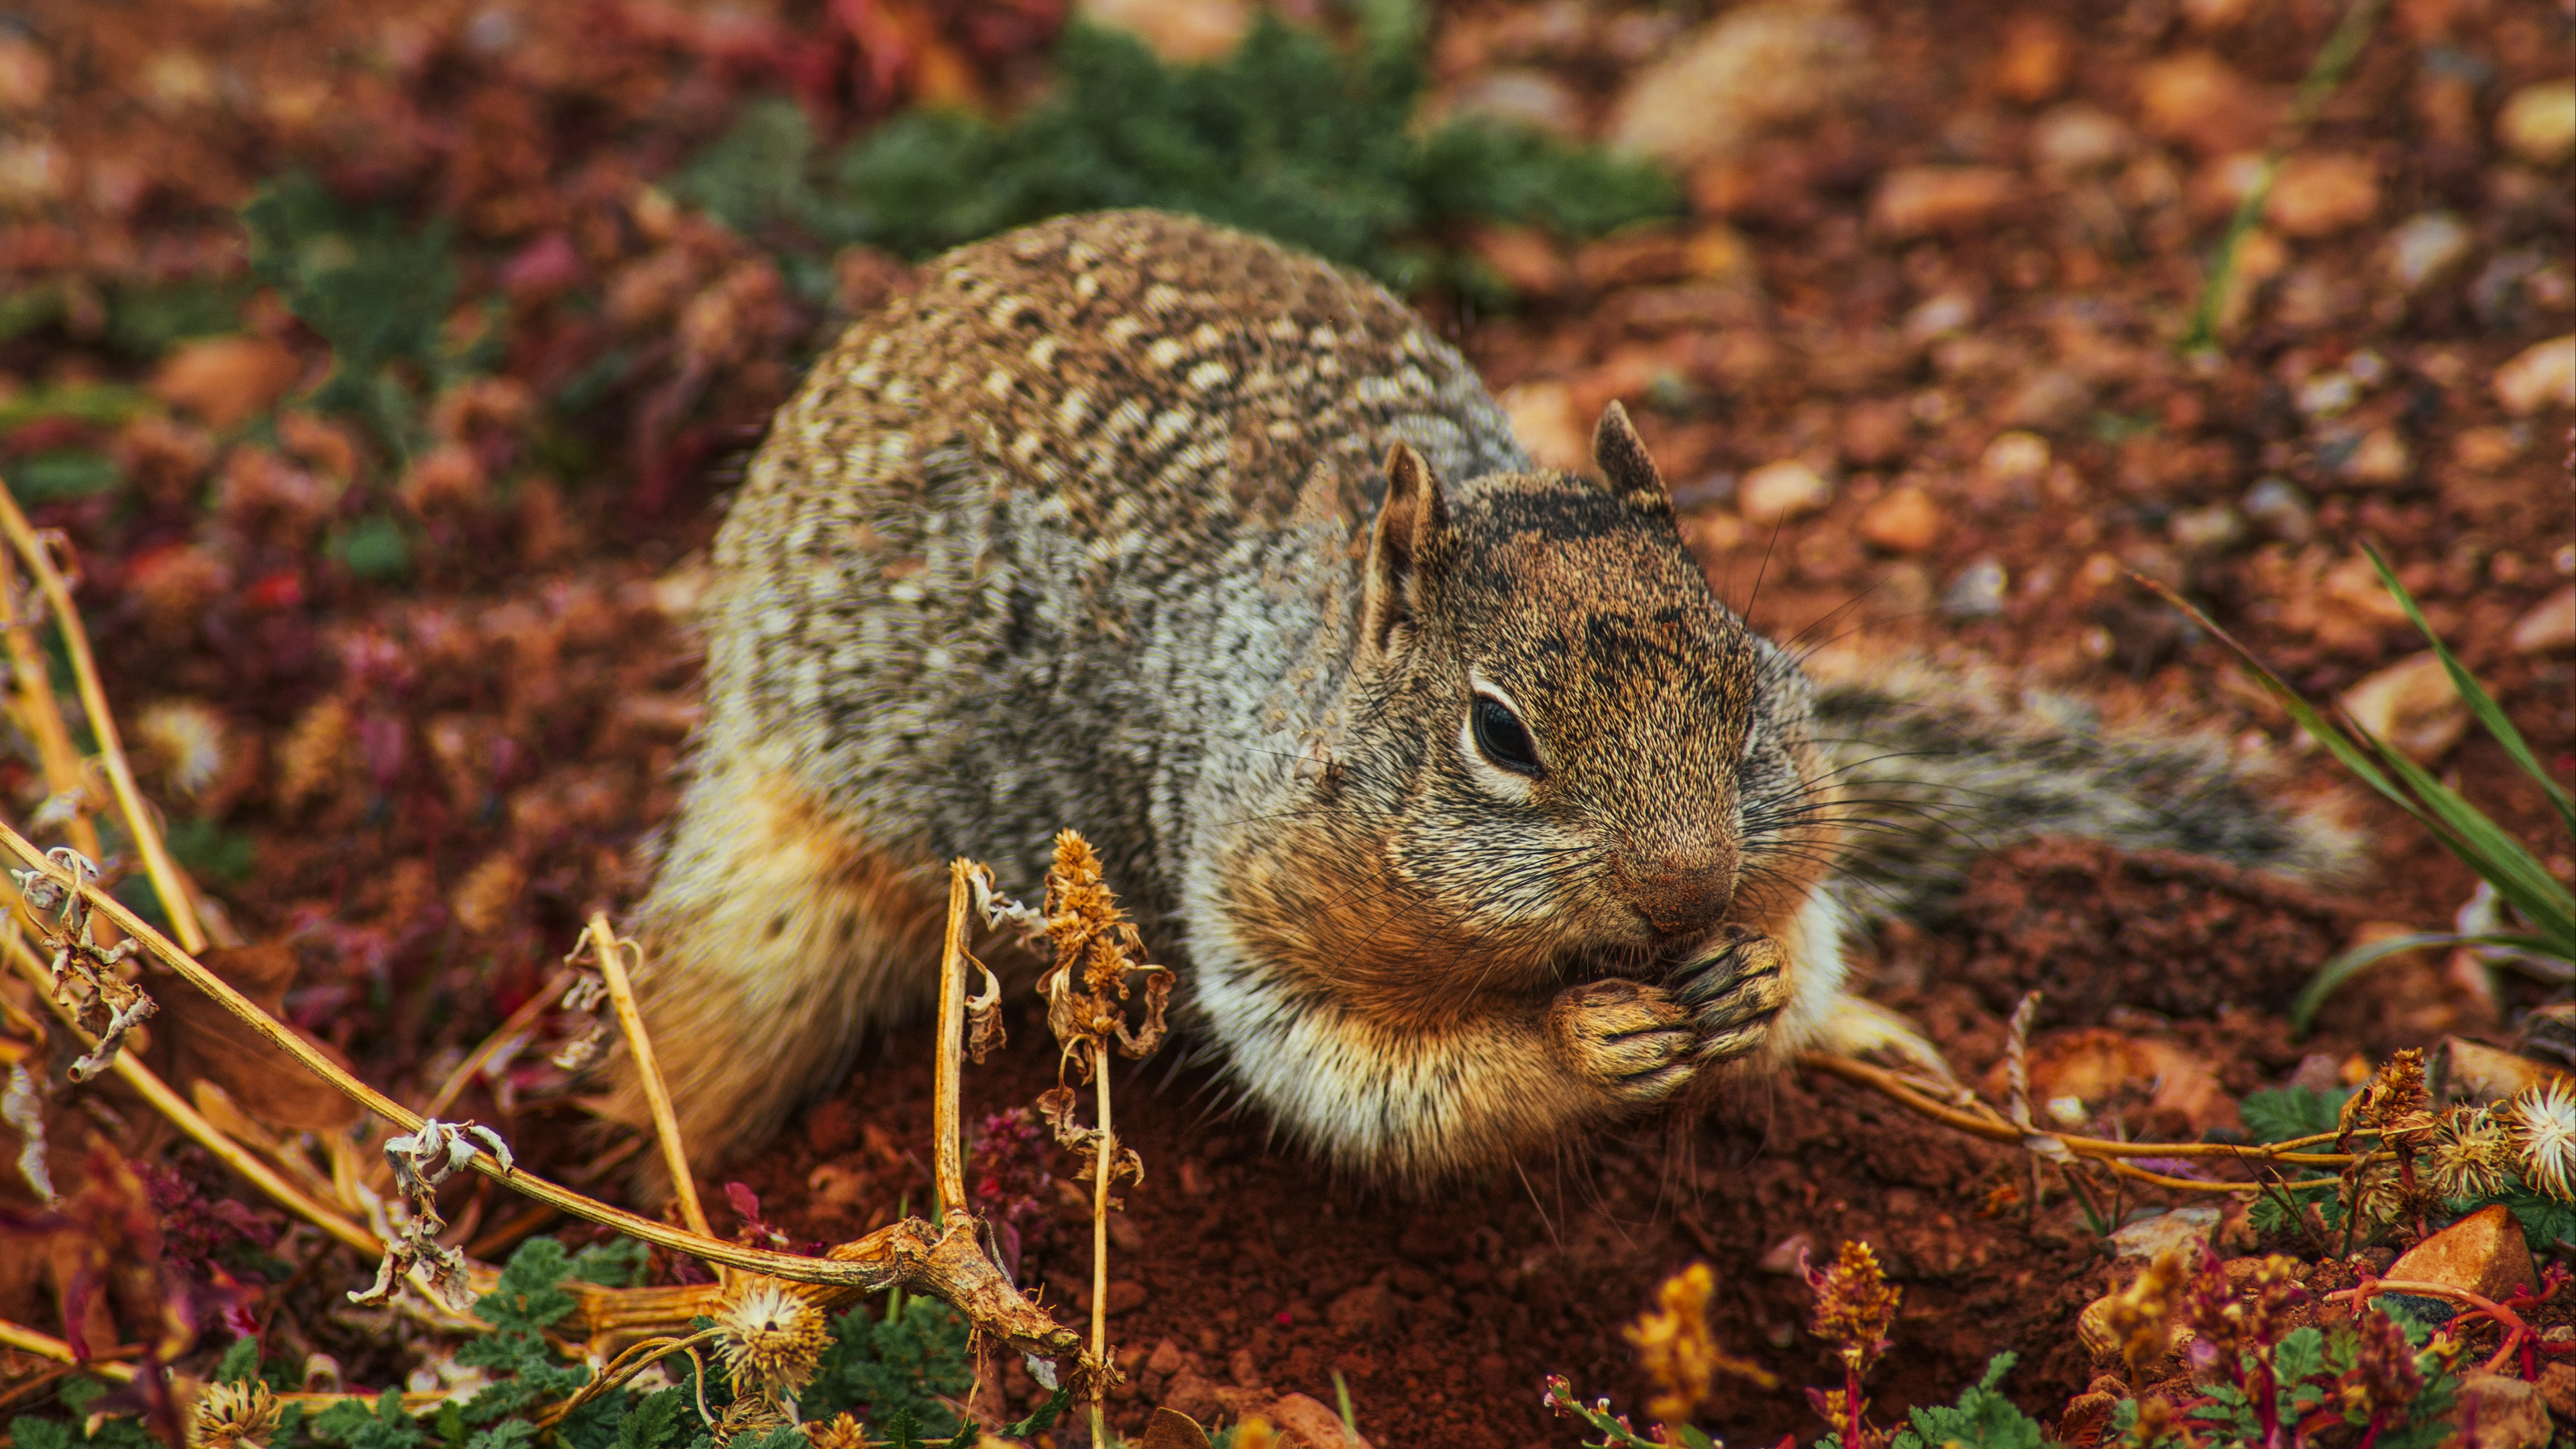 squirrel rodent earth dig 4k 1542242050 - squirrel, rodent, earth, dig 4k - Squirrel, rodent, Earth